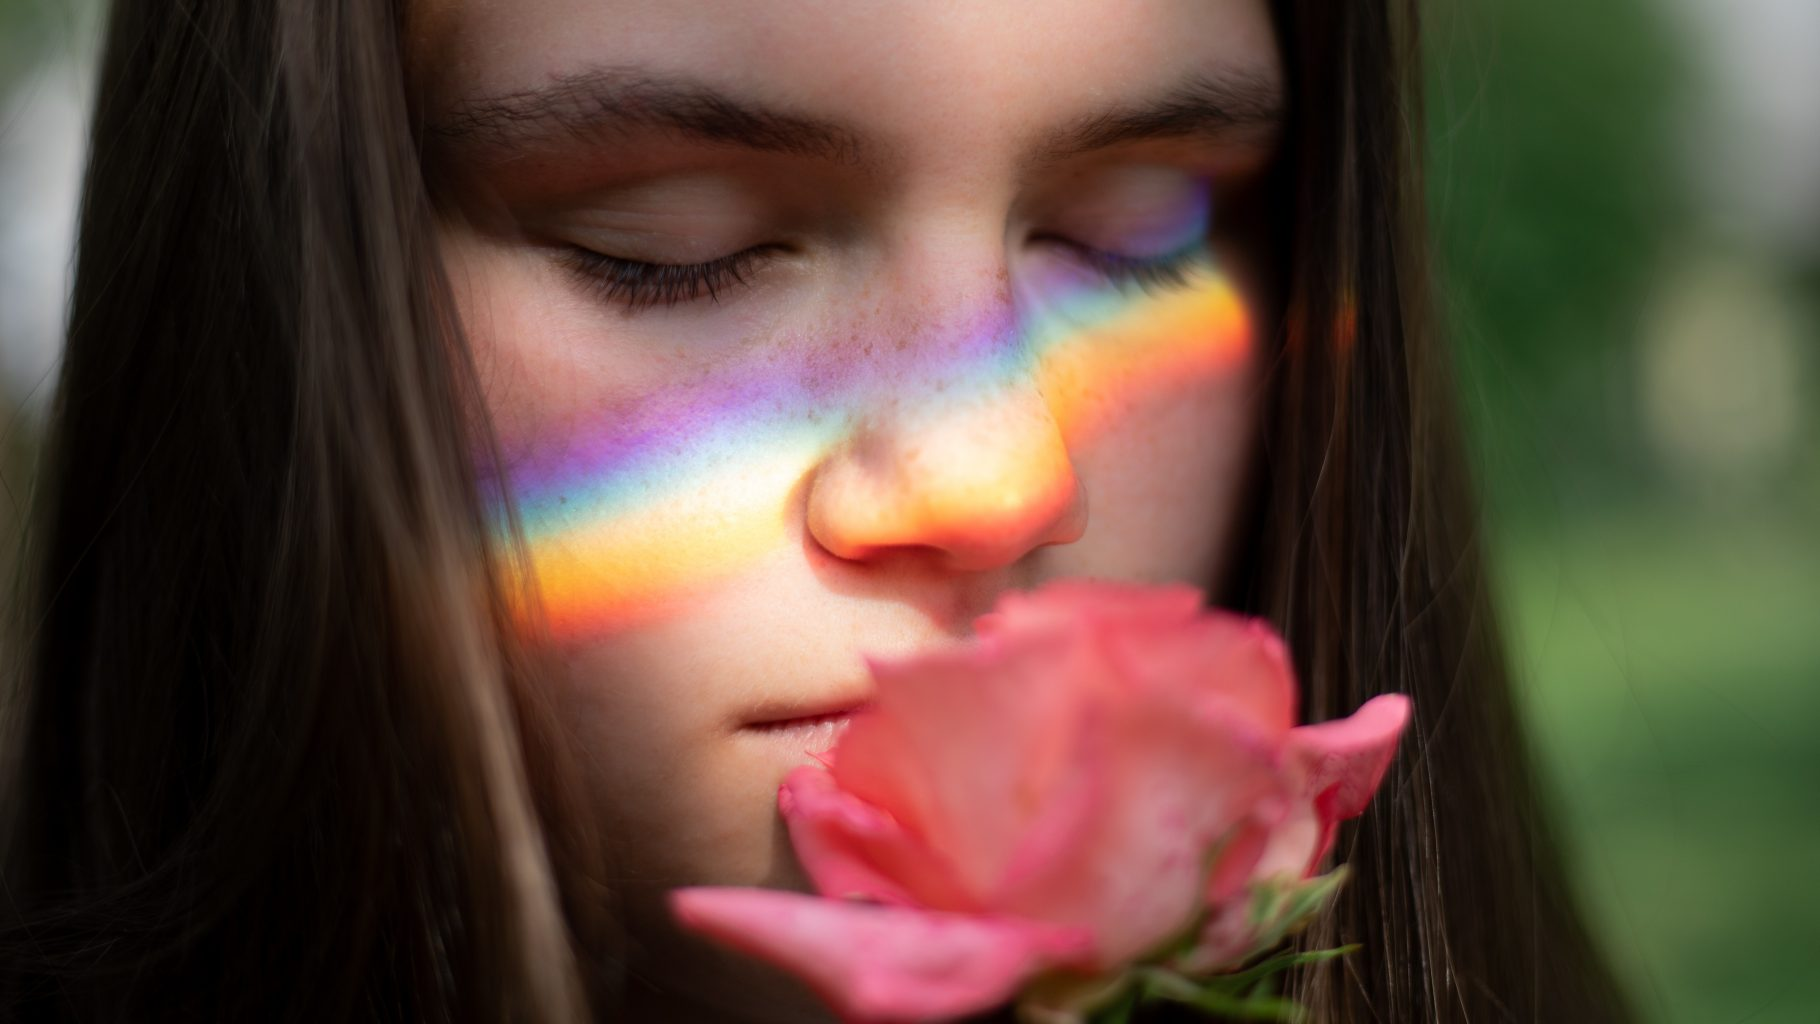 Image: A girl smelling a rose with deep satisfaction